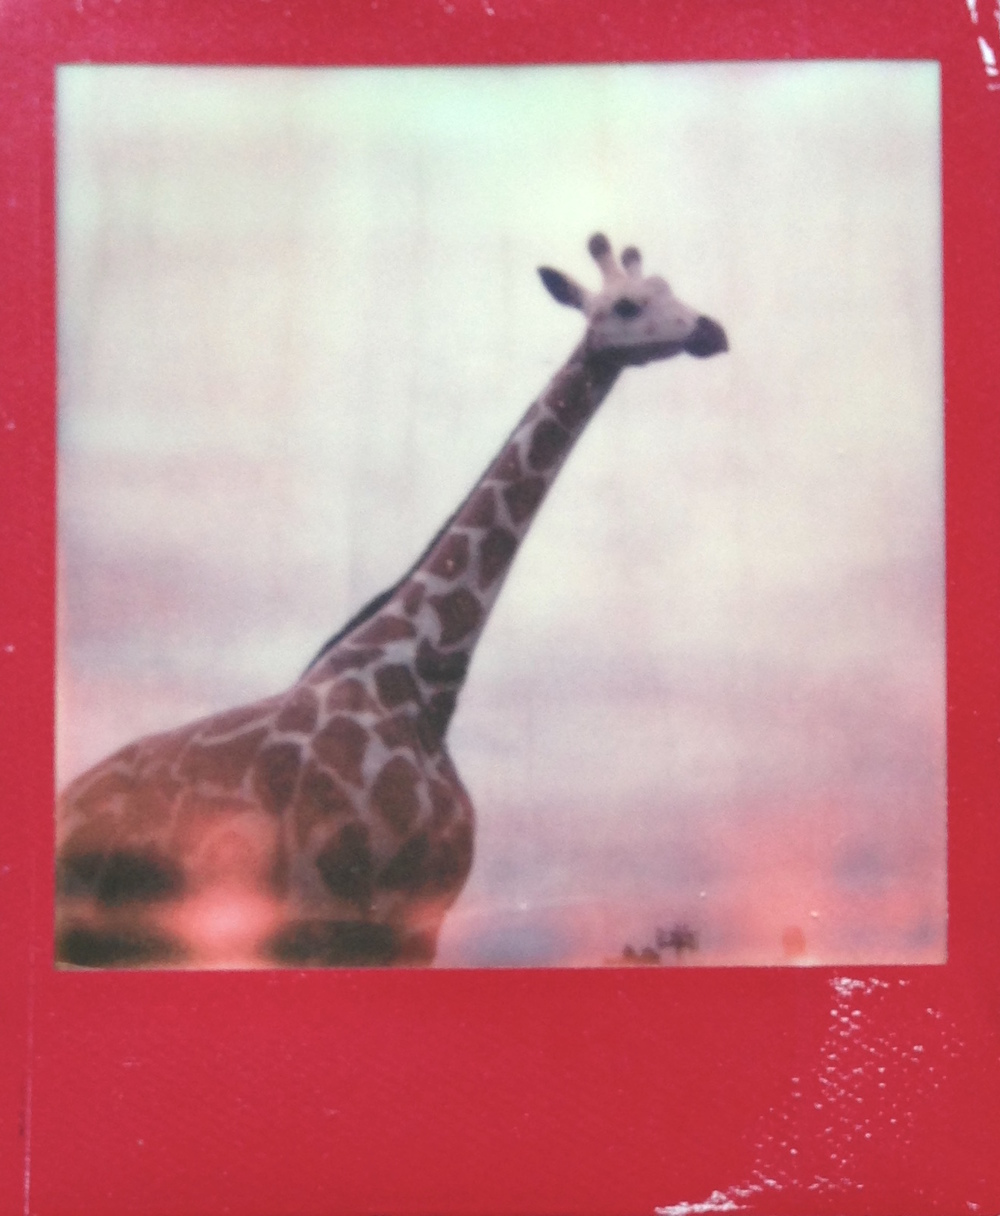 spirit animal polaroid color frame jvorwaller.JPG